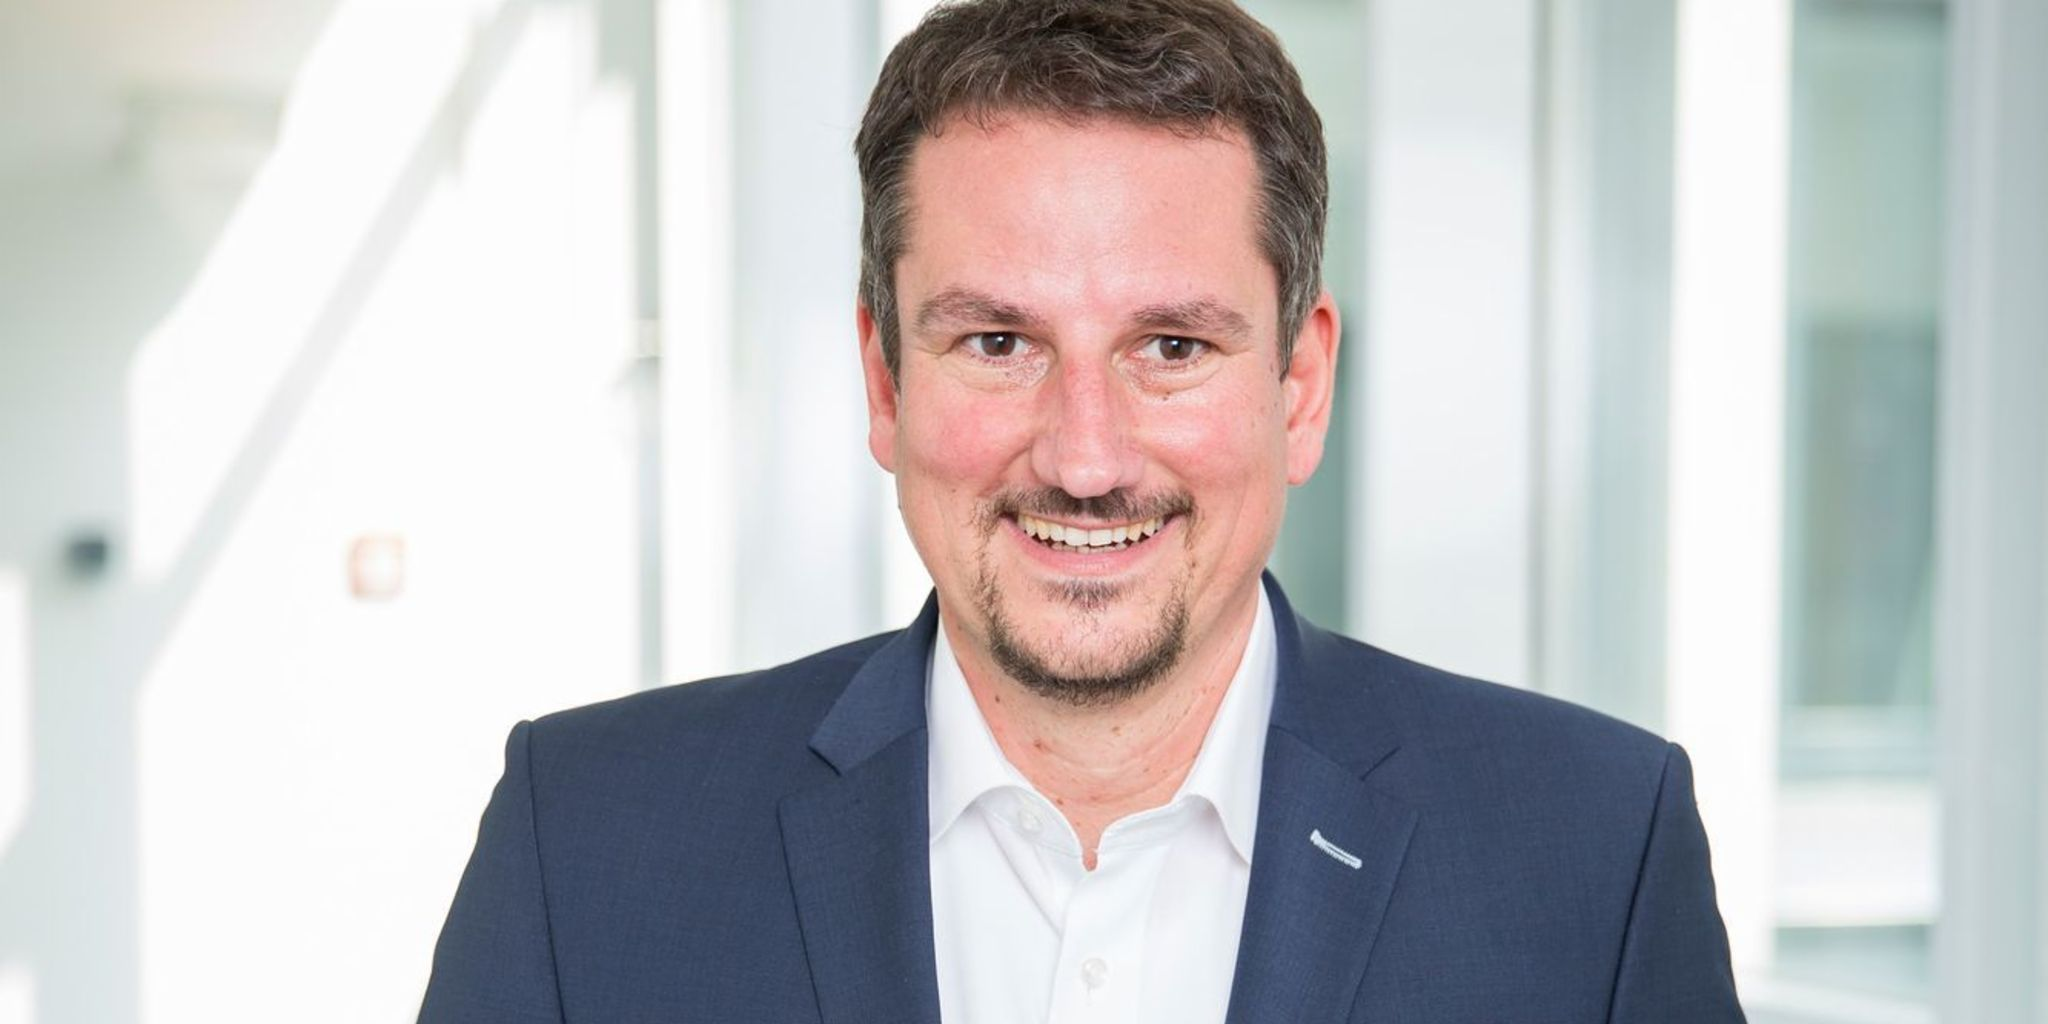 Joachim Göller, Leiter des Center of Analytics der EOS Gruppe